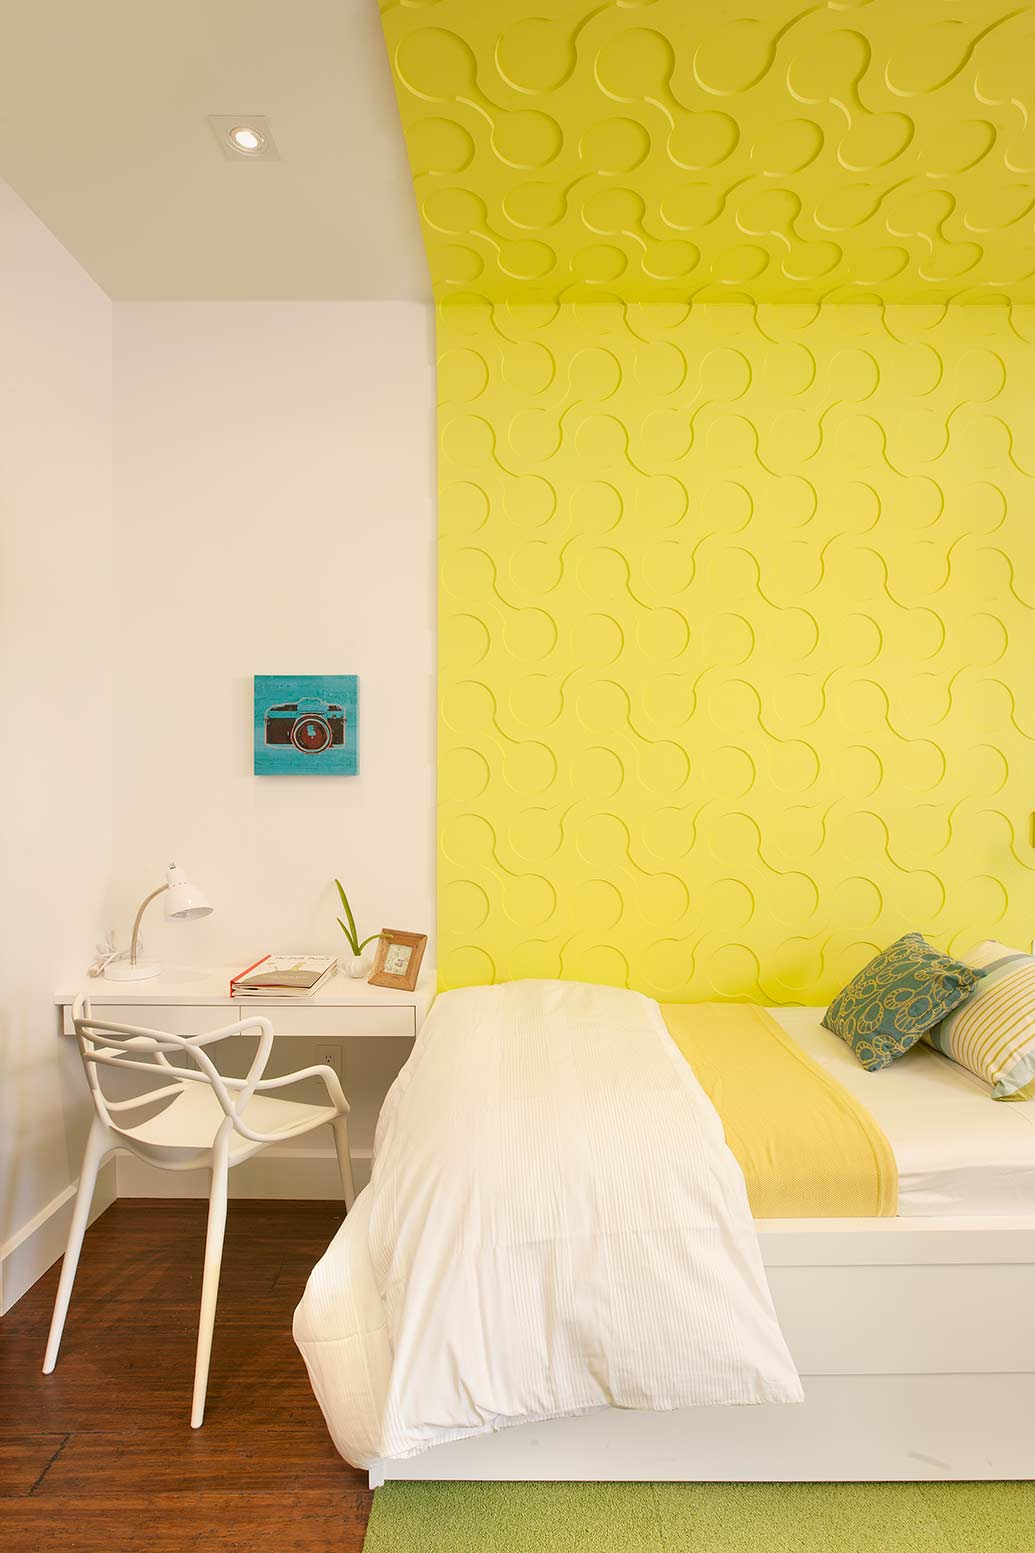 Inspiring Color Blocked Interiors by DKOR Interiors